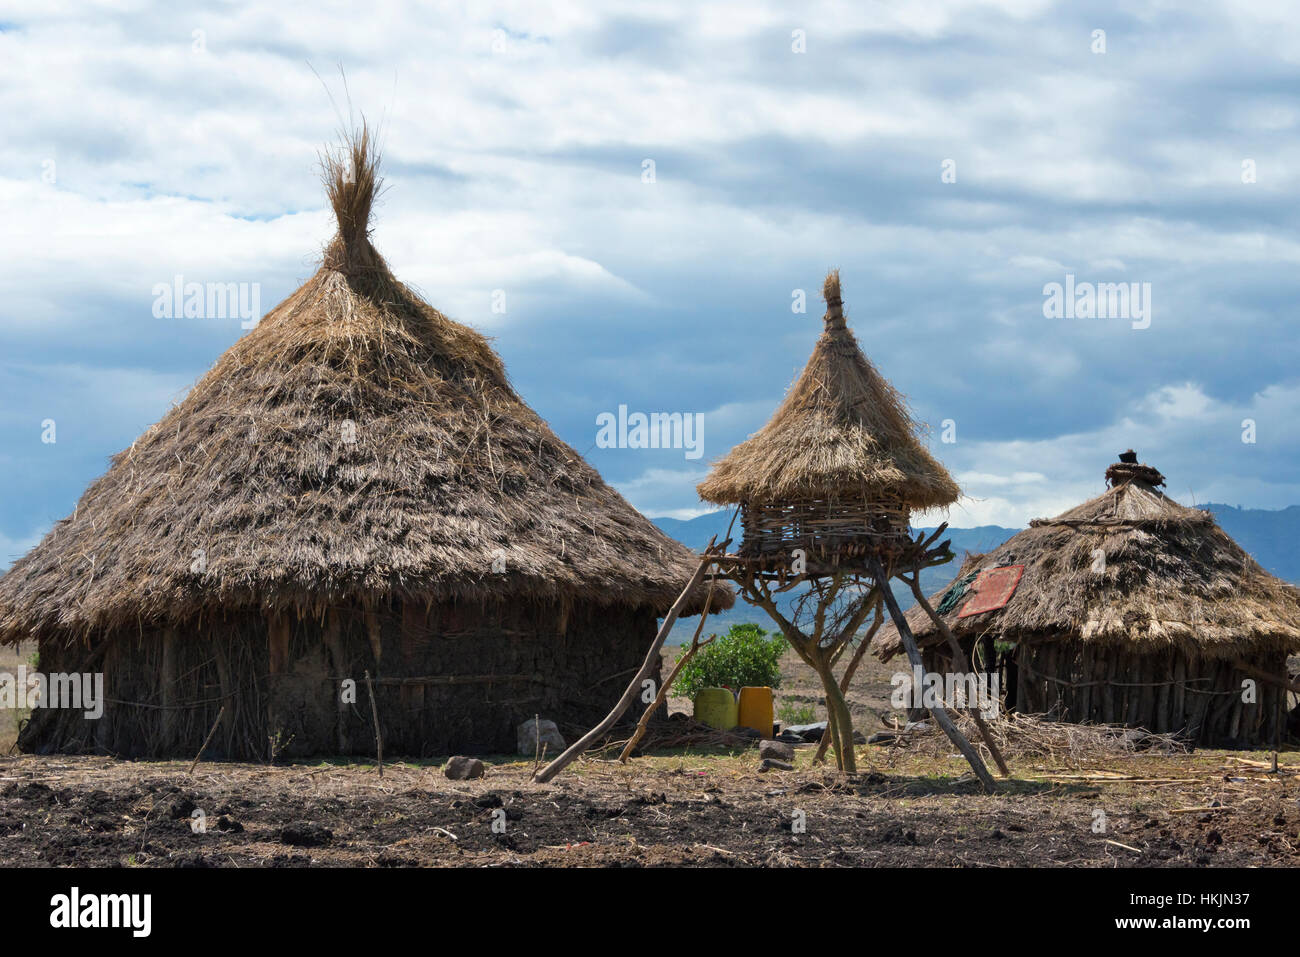 Traditional village houses with thatched roof and chicken cage in the mountain, Konso, Ethiopia - Stock Image